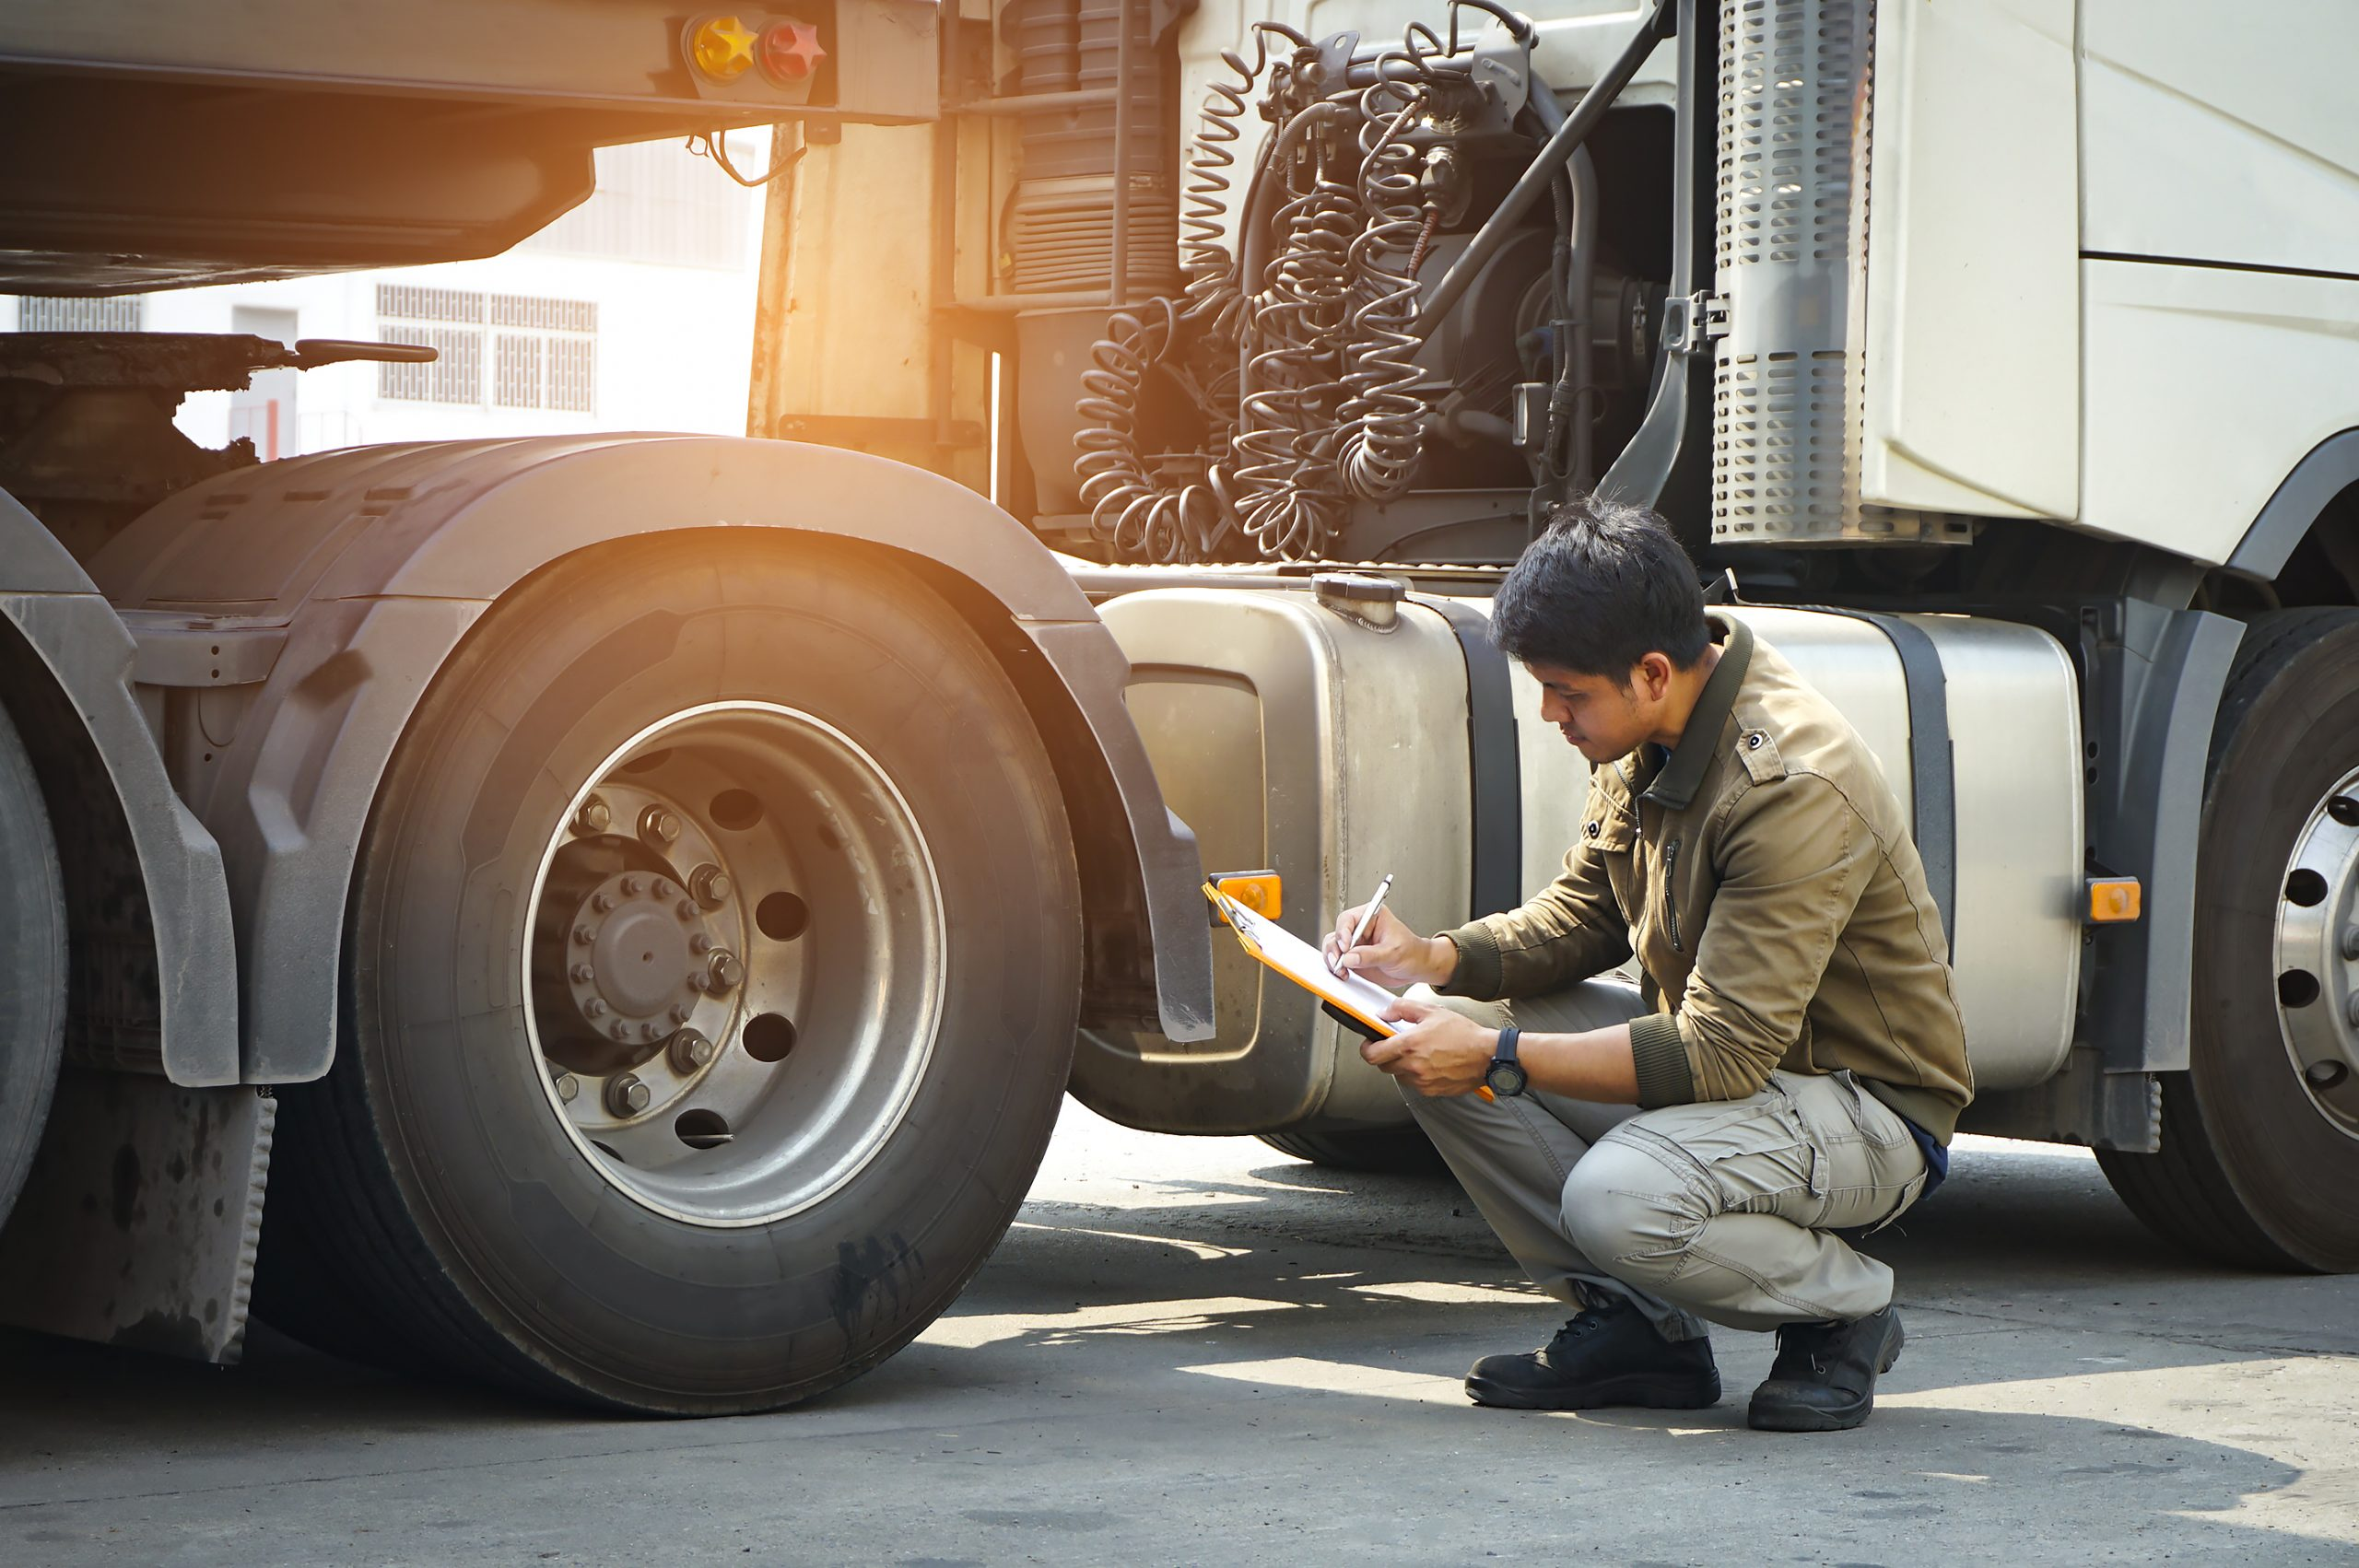 Play It Safe with a Vehicle Fleet Safety Program